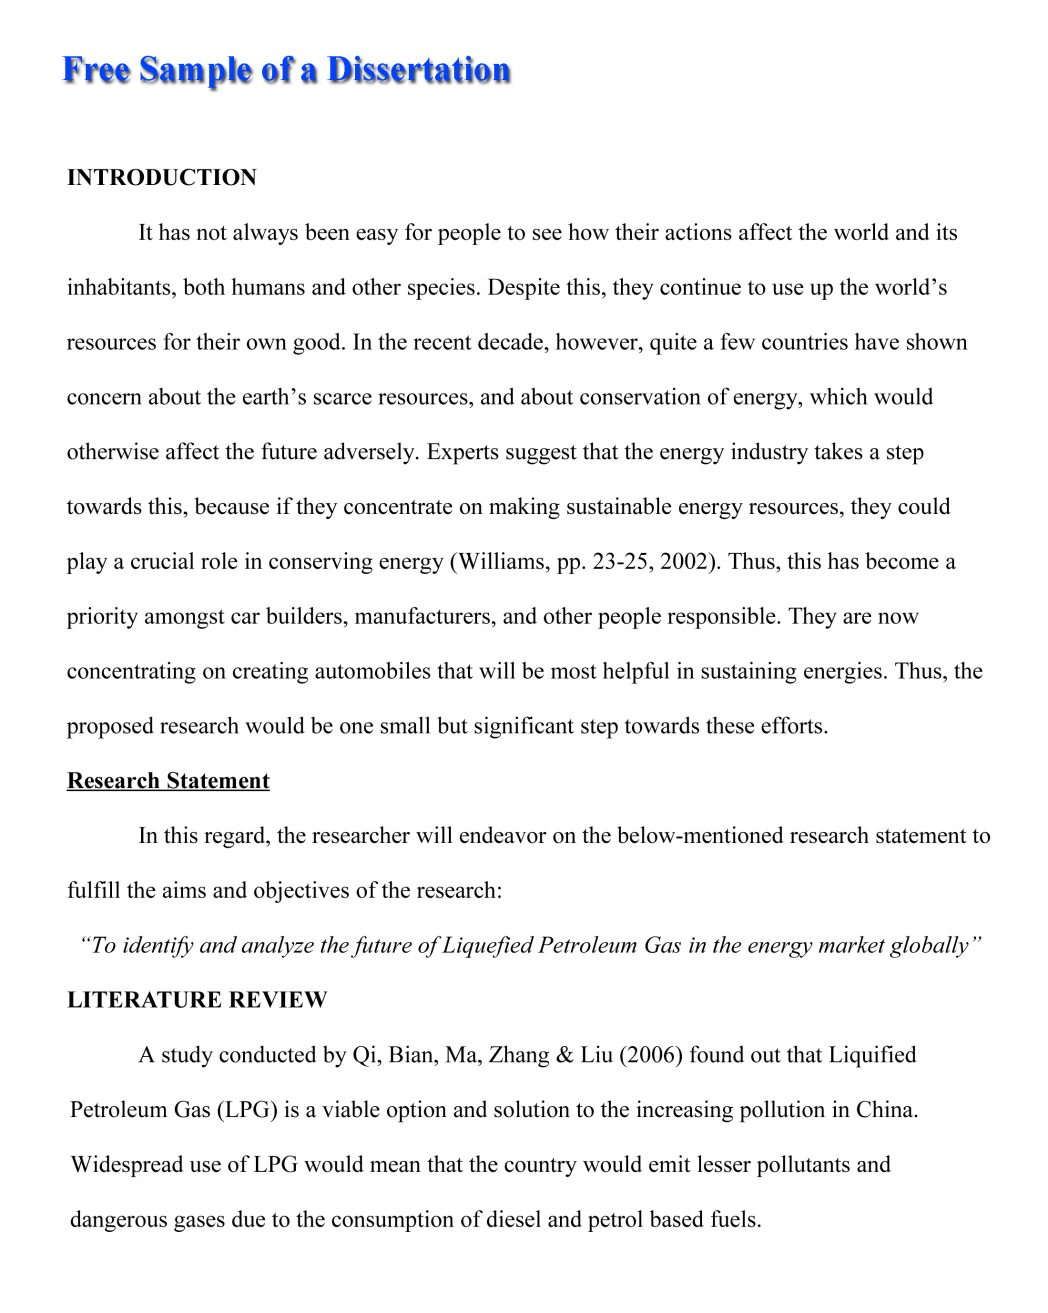 001 How To Write Comparative Essay Analysis Thesis Poetry Introduction Dissertation Free S Vce Contrast Example Comparison Incredible A Compare Full